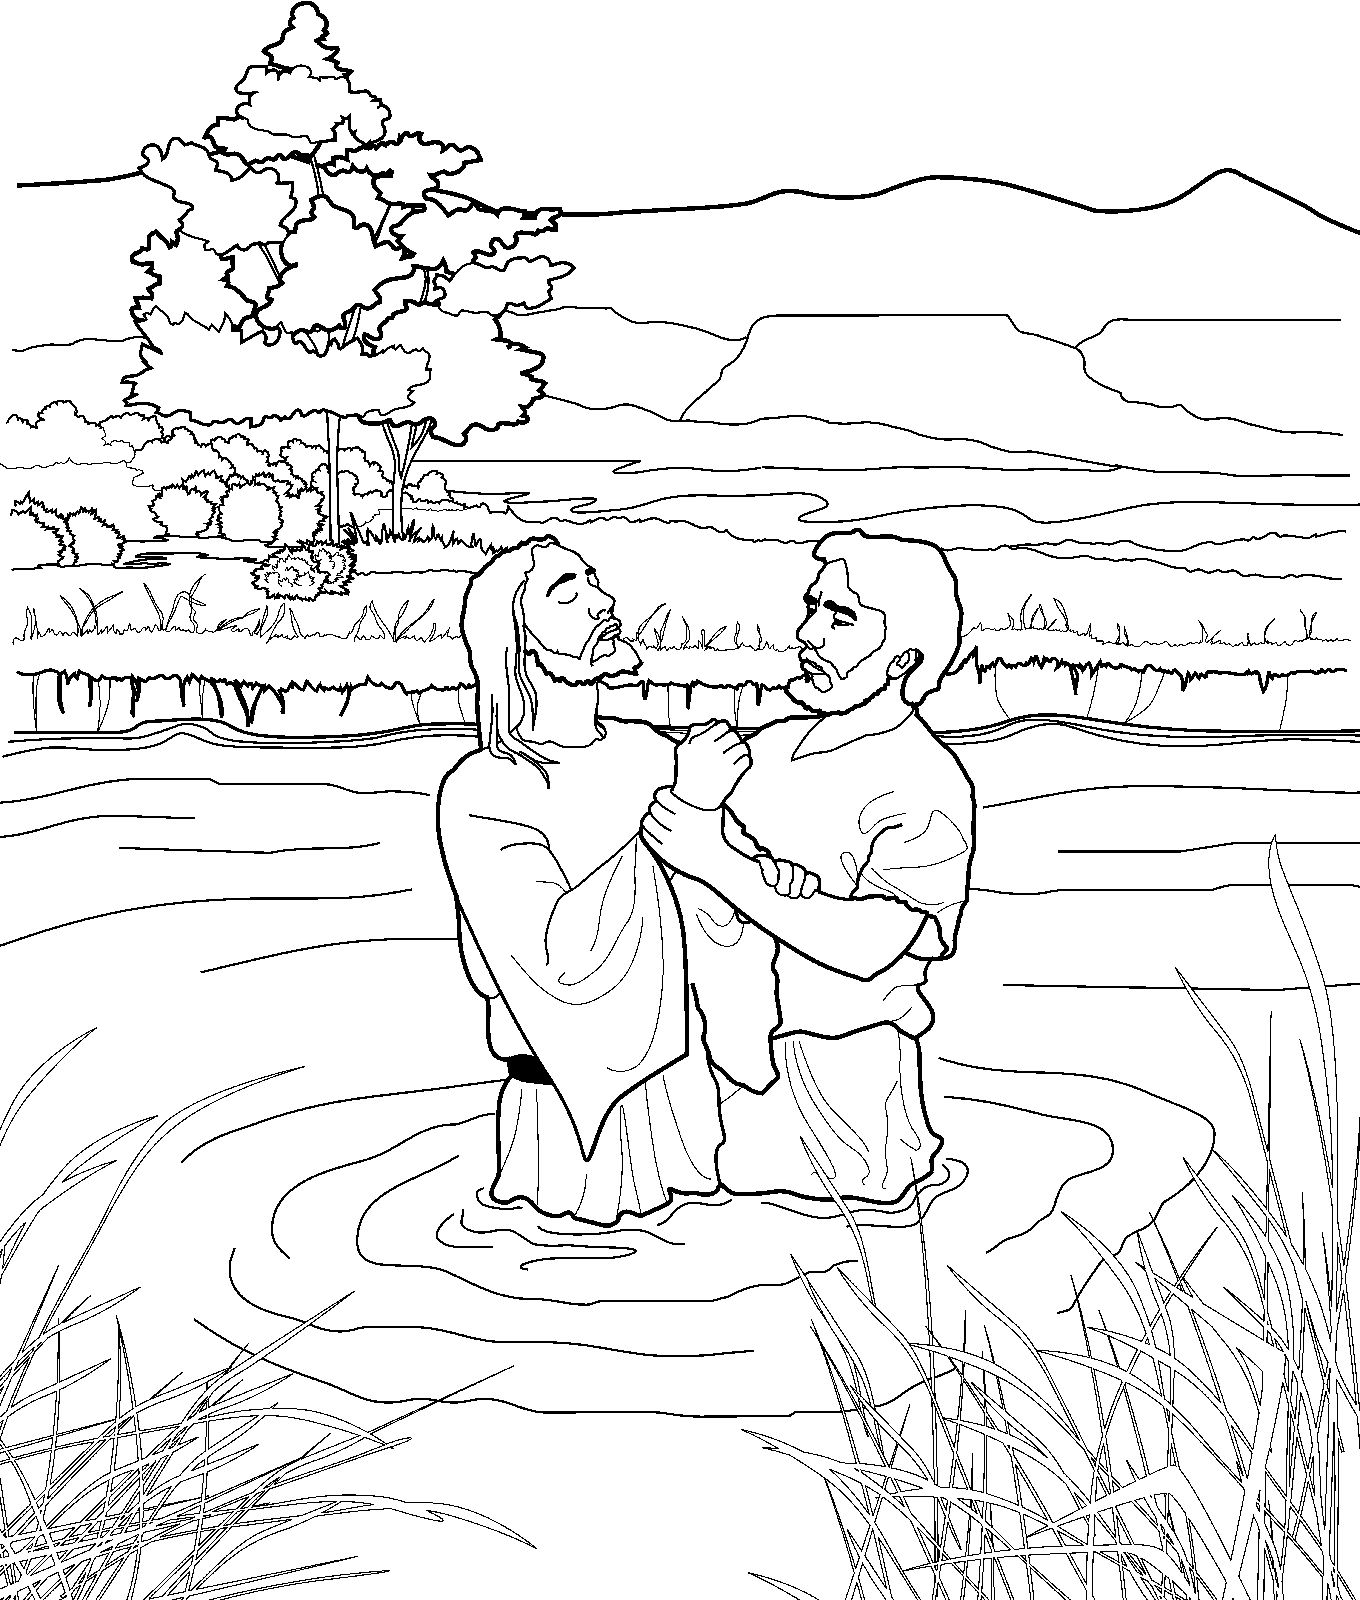 John the Baptist coloring page for kids from ldsorg ldsprimary